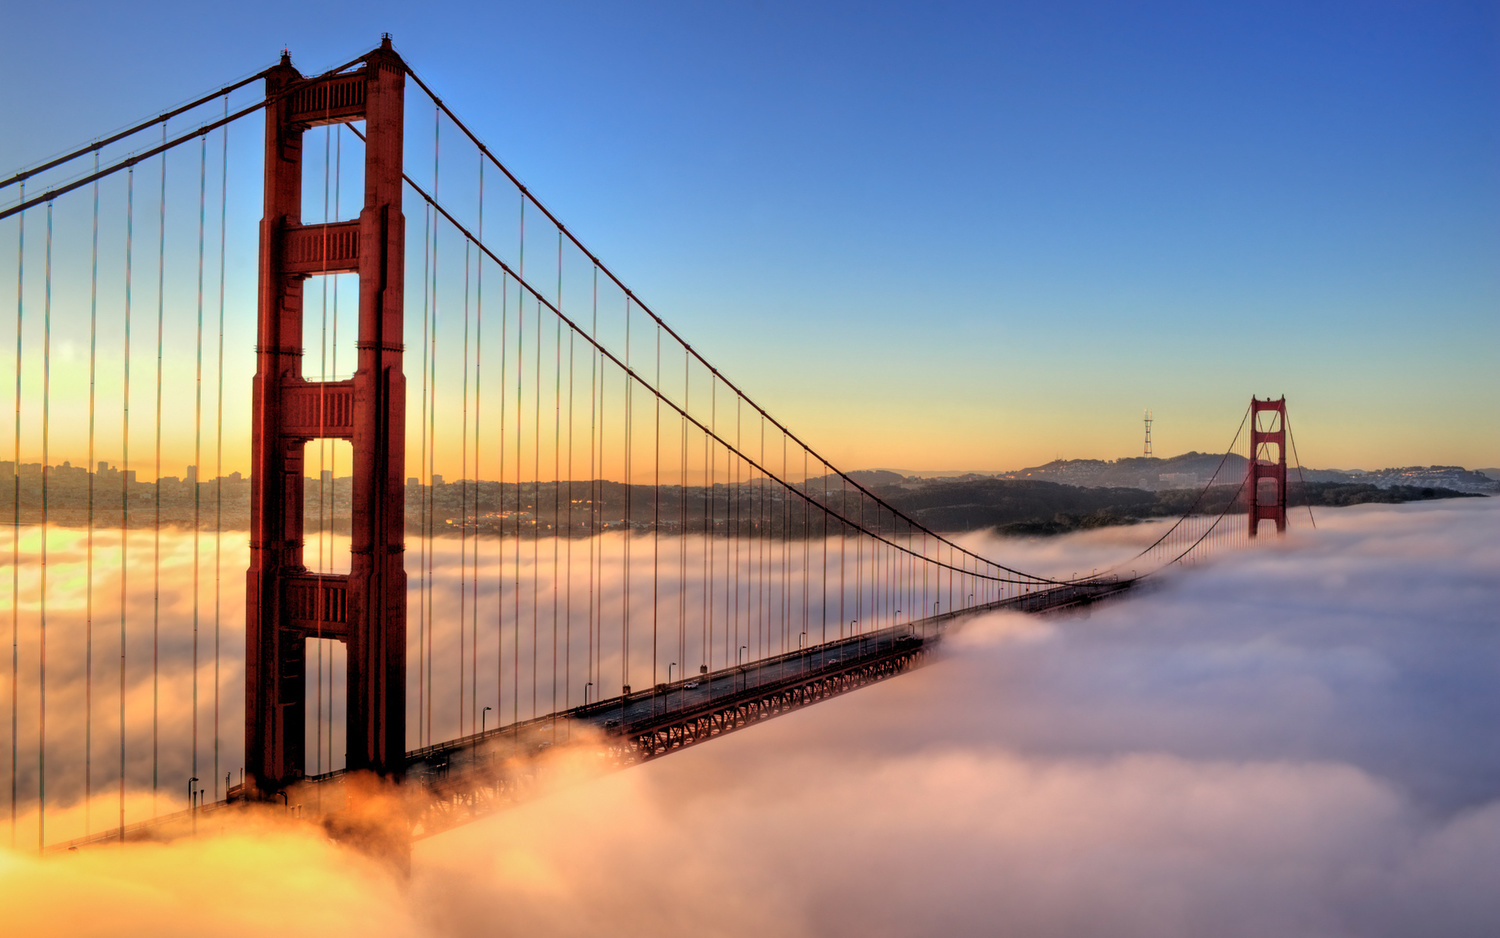 golden-gate-bridge-san-francisco-united-states1